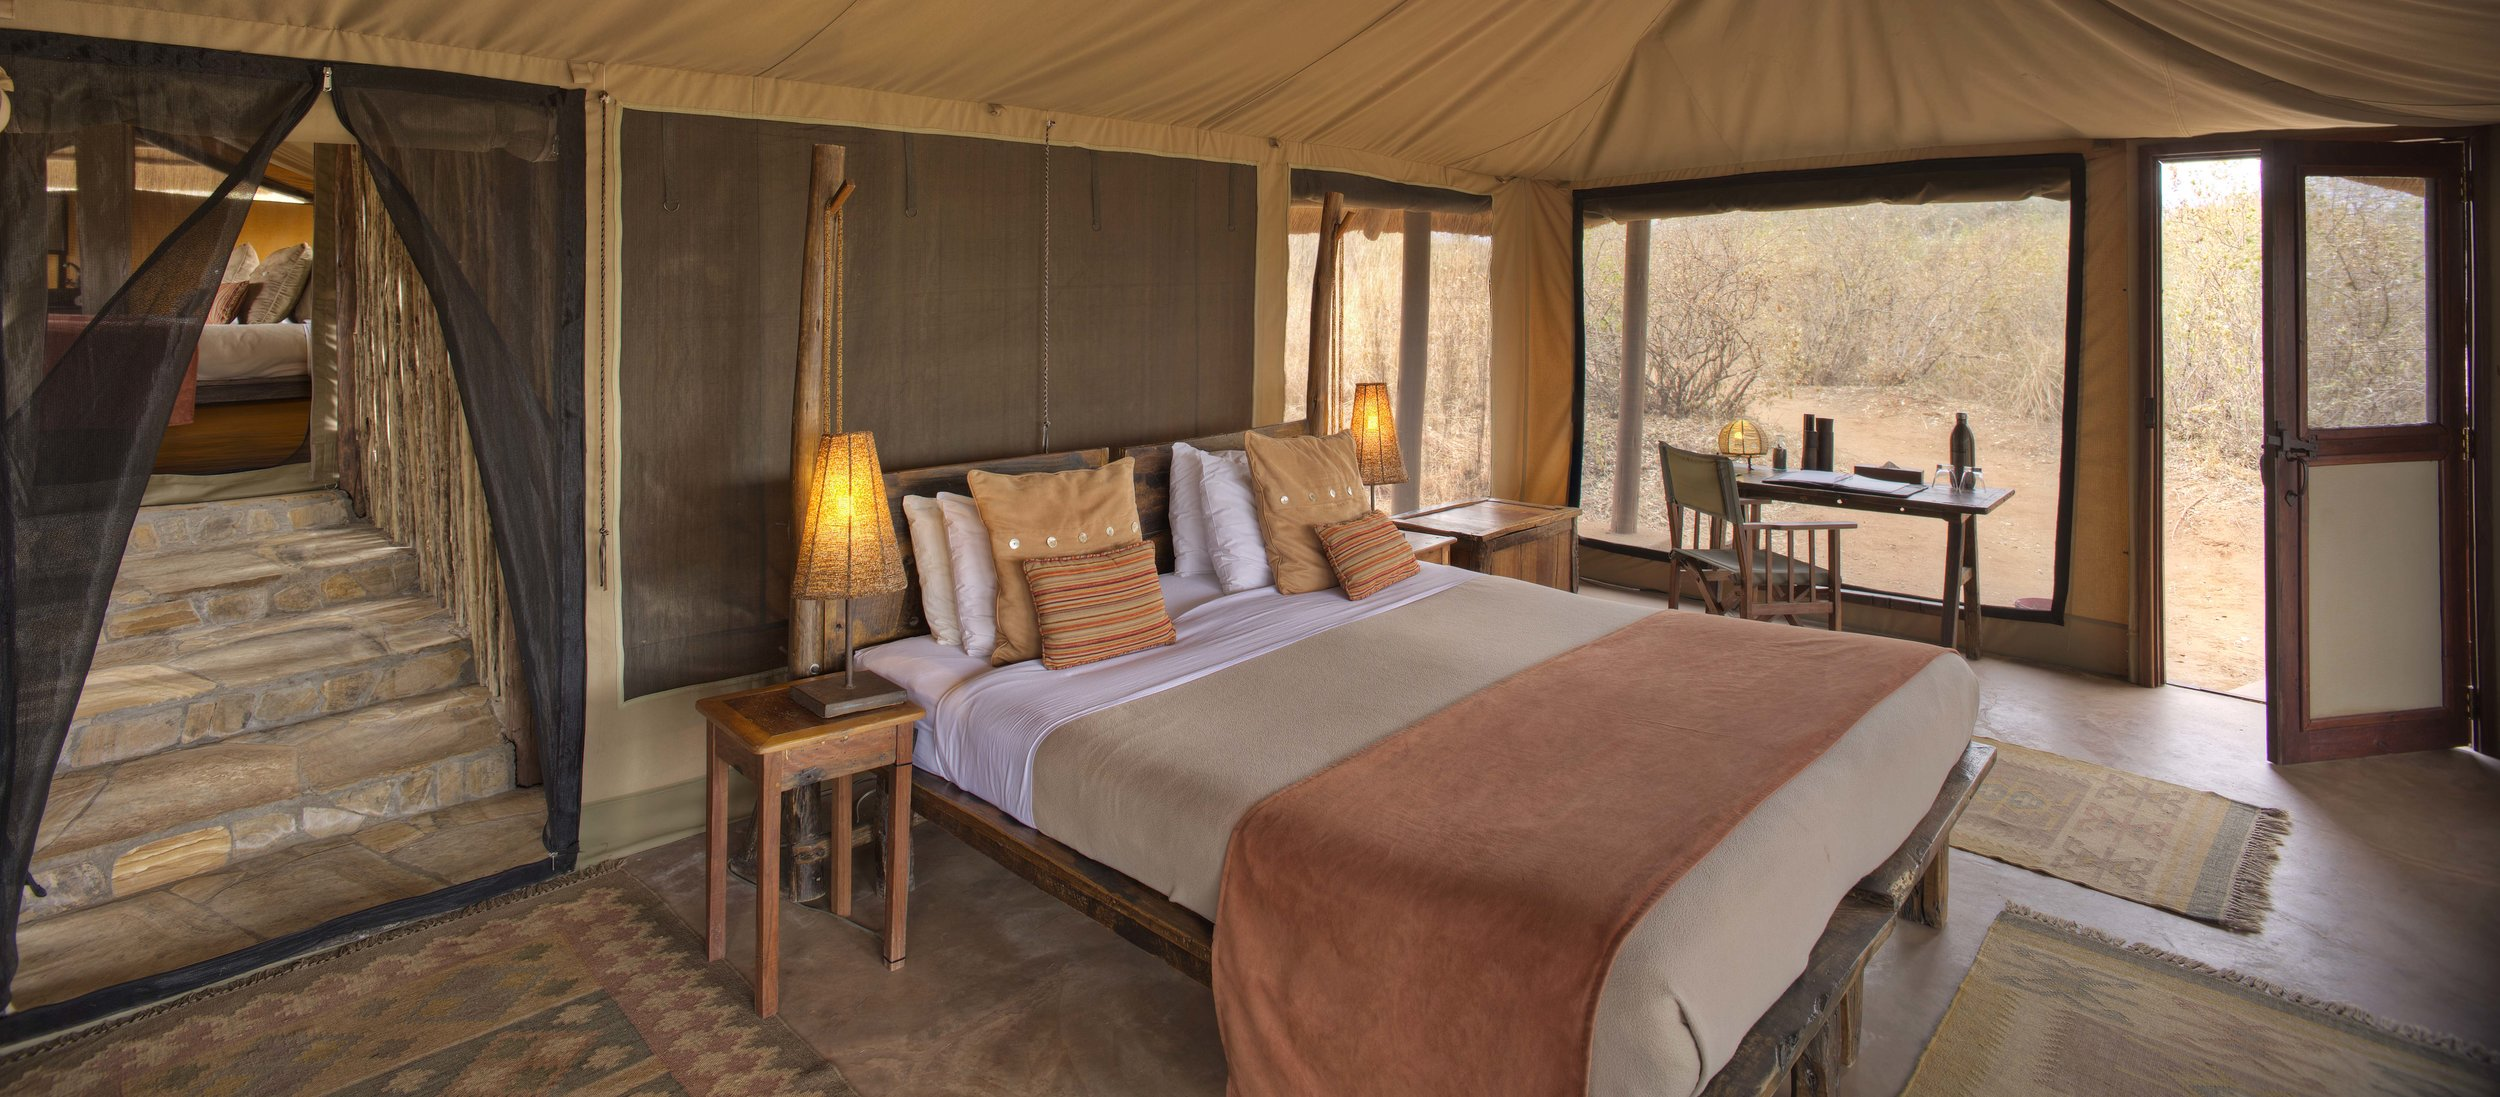 Olivers-camp-view-of-guest-tent-interior.jpg